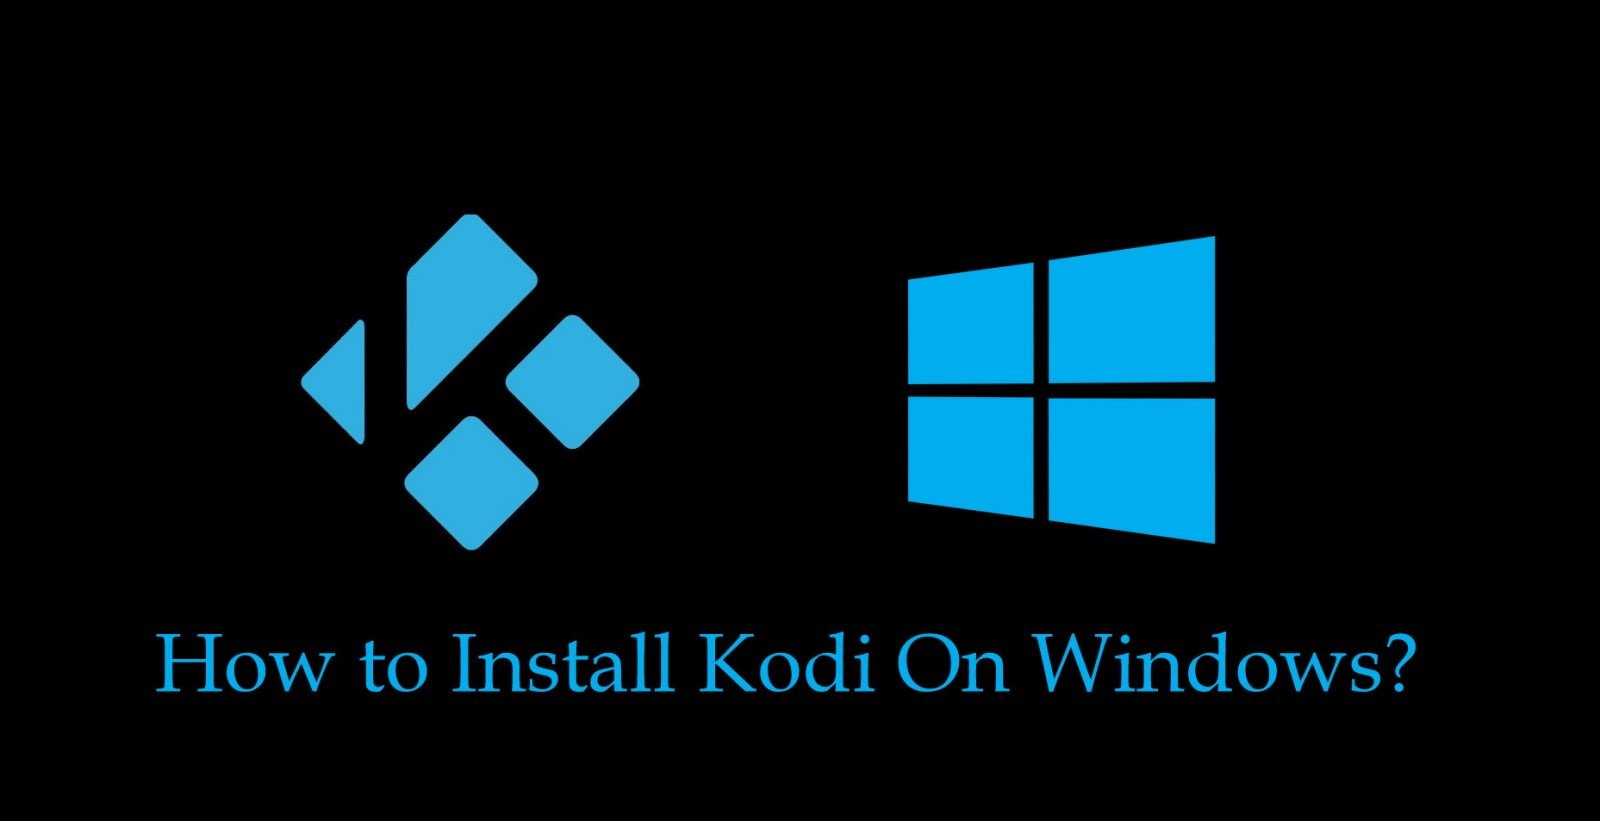 How to install Kodi on Windows?